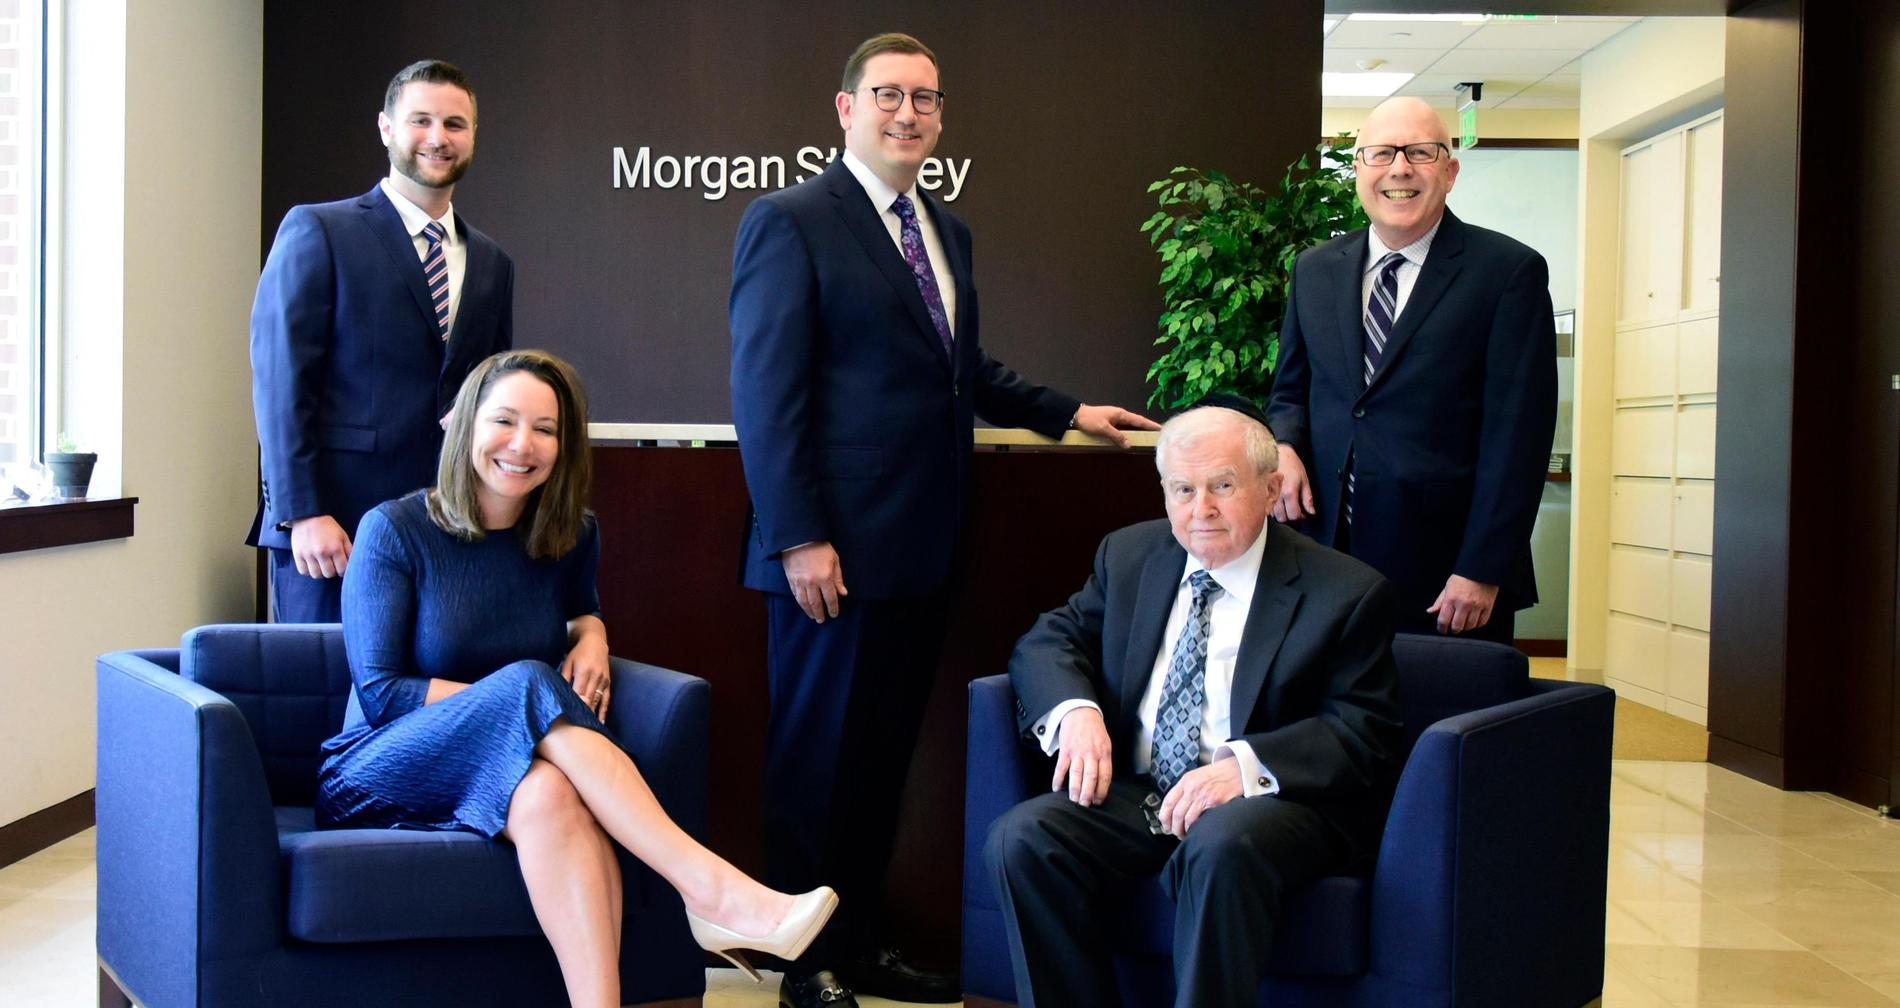 The Quarry Lake Group | Baltimore, MD | Morgan Stanley